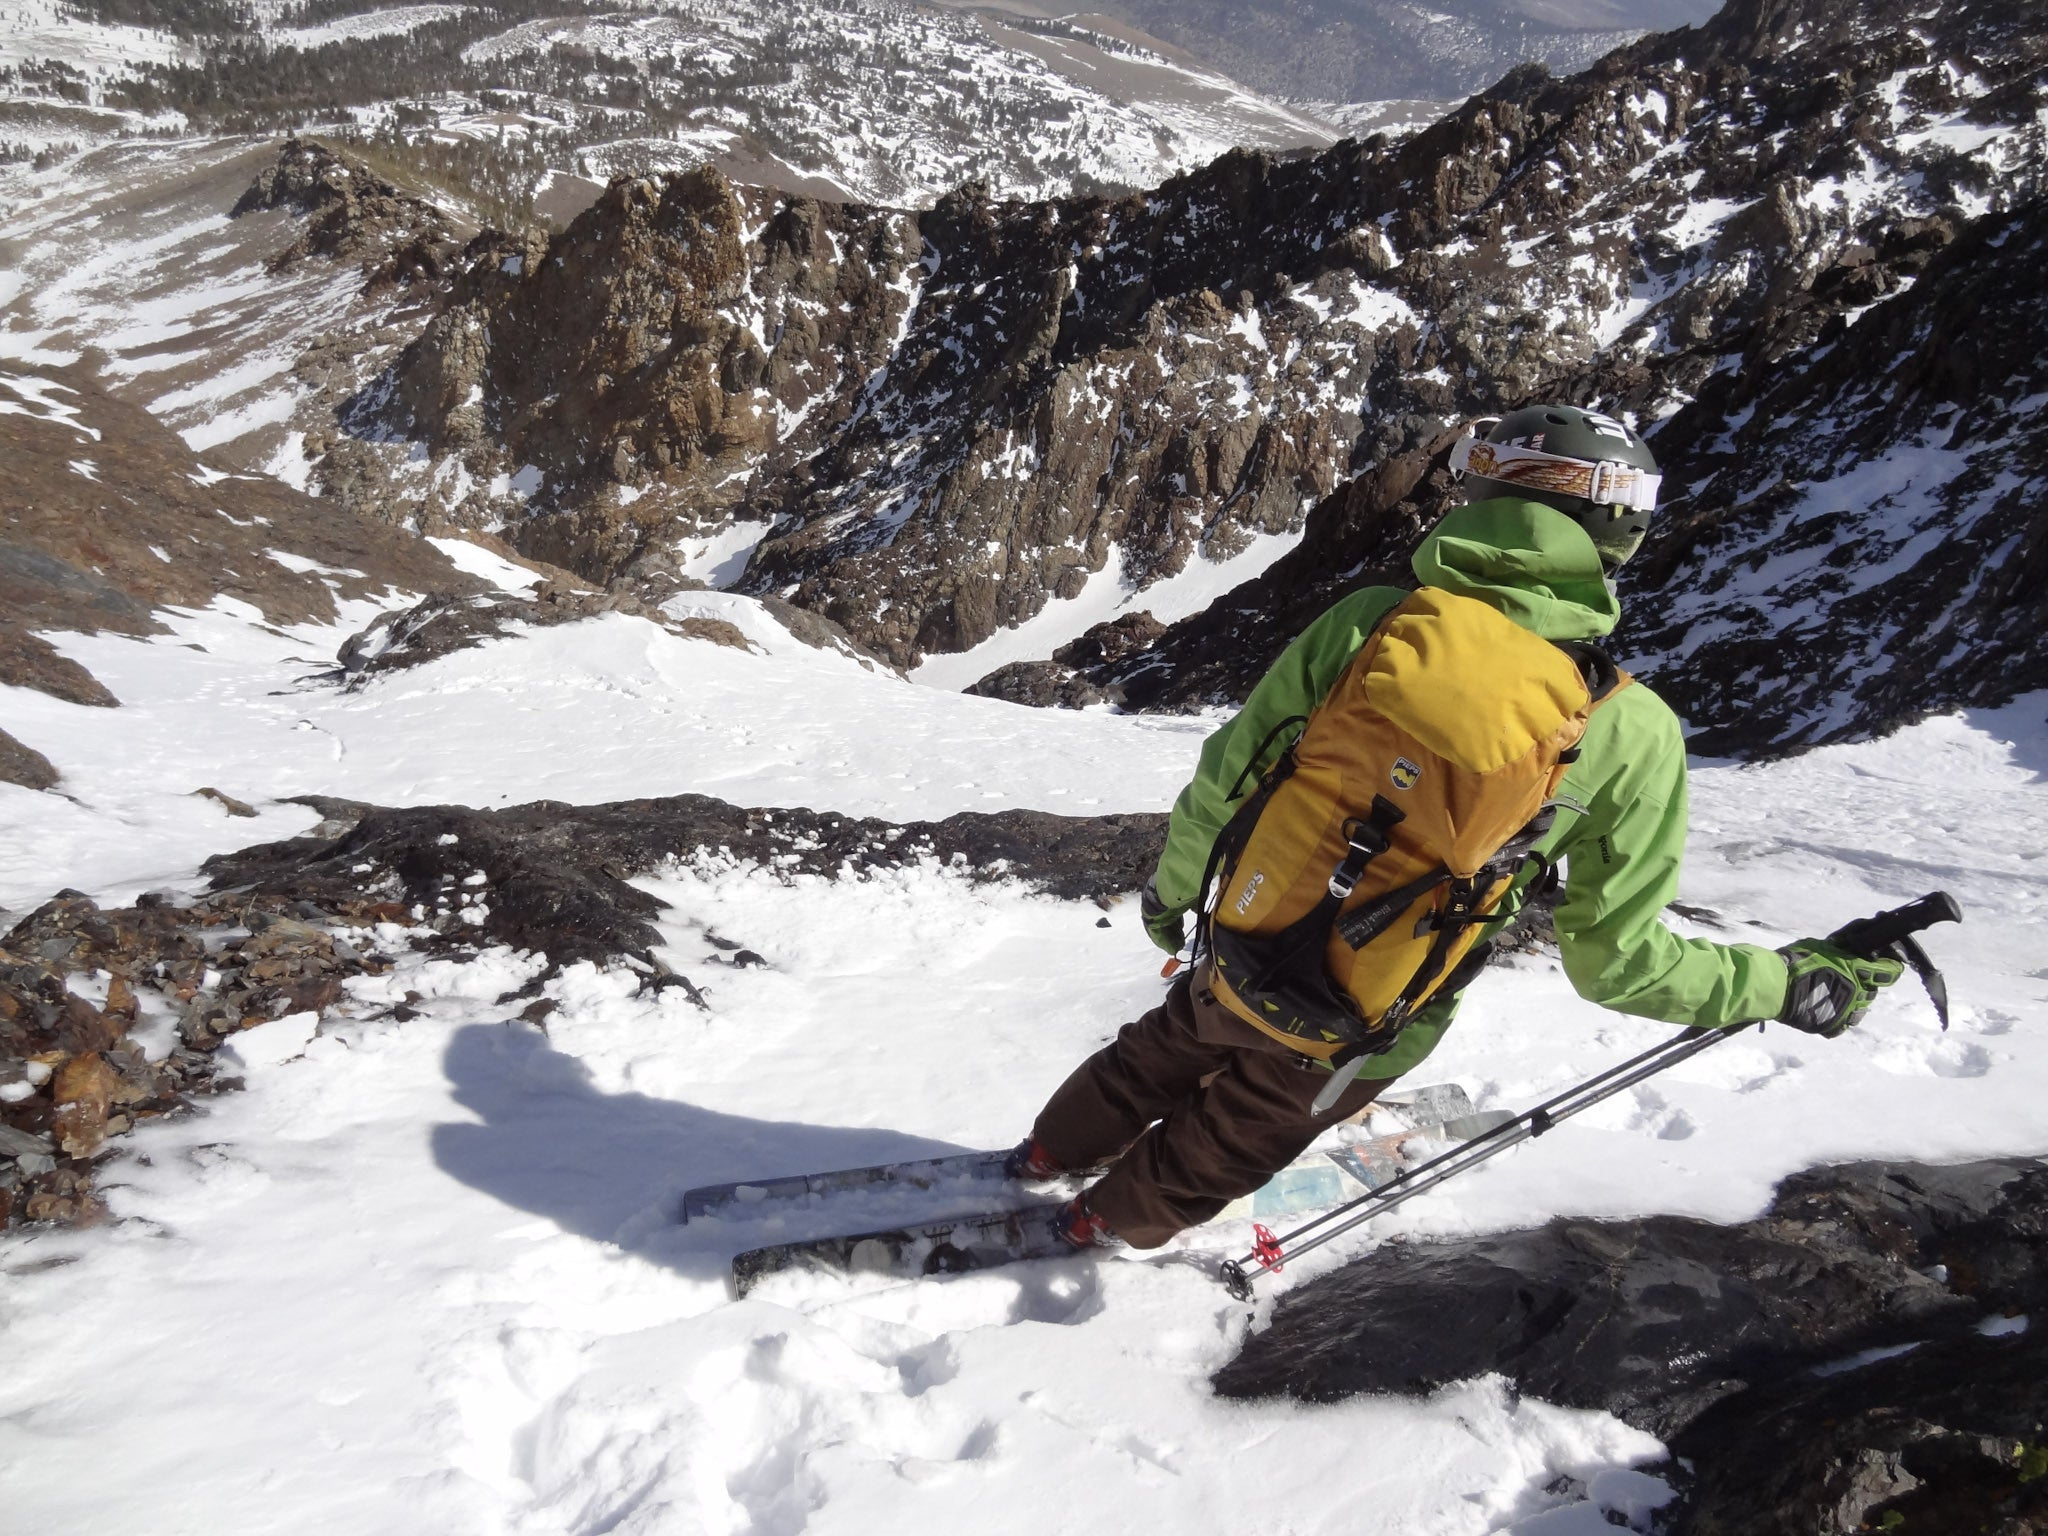 Life on the Ridge: Five Questions for Nate Greenberg